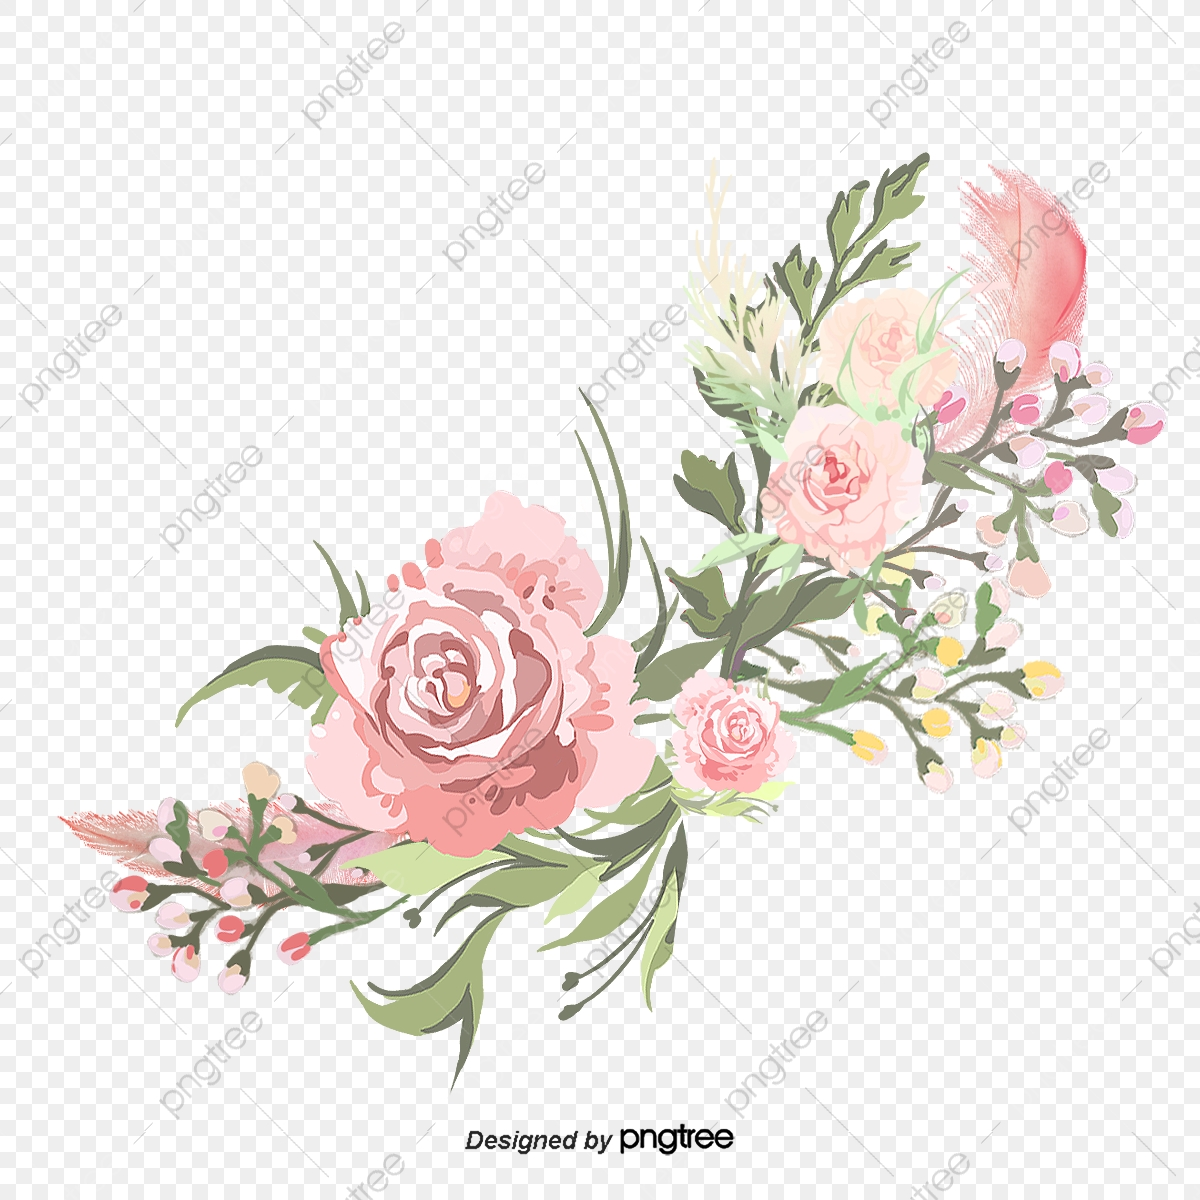 Watercolor Pink Flowers Sen Department Watercolor Clipart Pink Flowers Leaves Pink Png Transparent Clipart Image And Psd File For Free Download